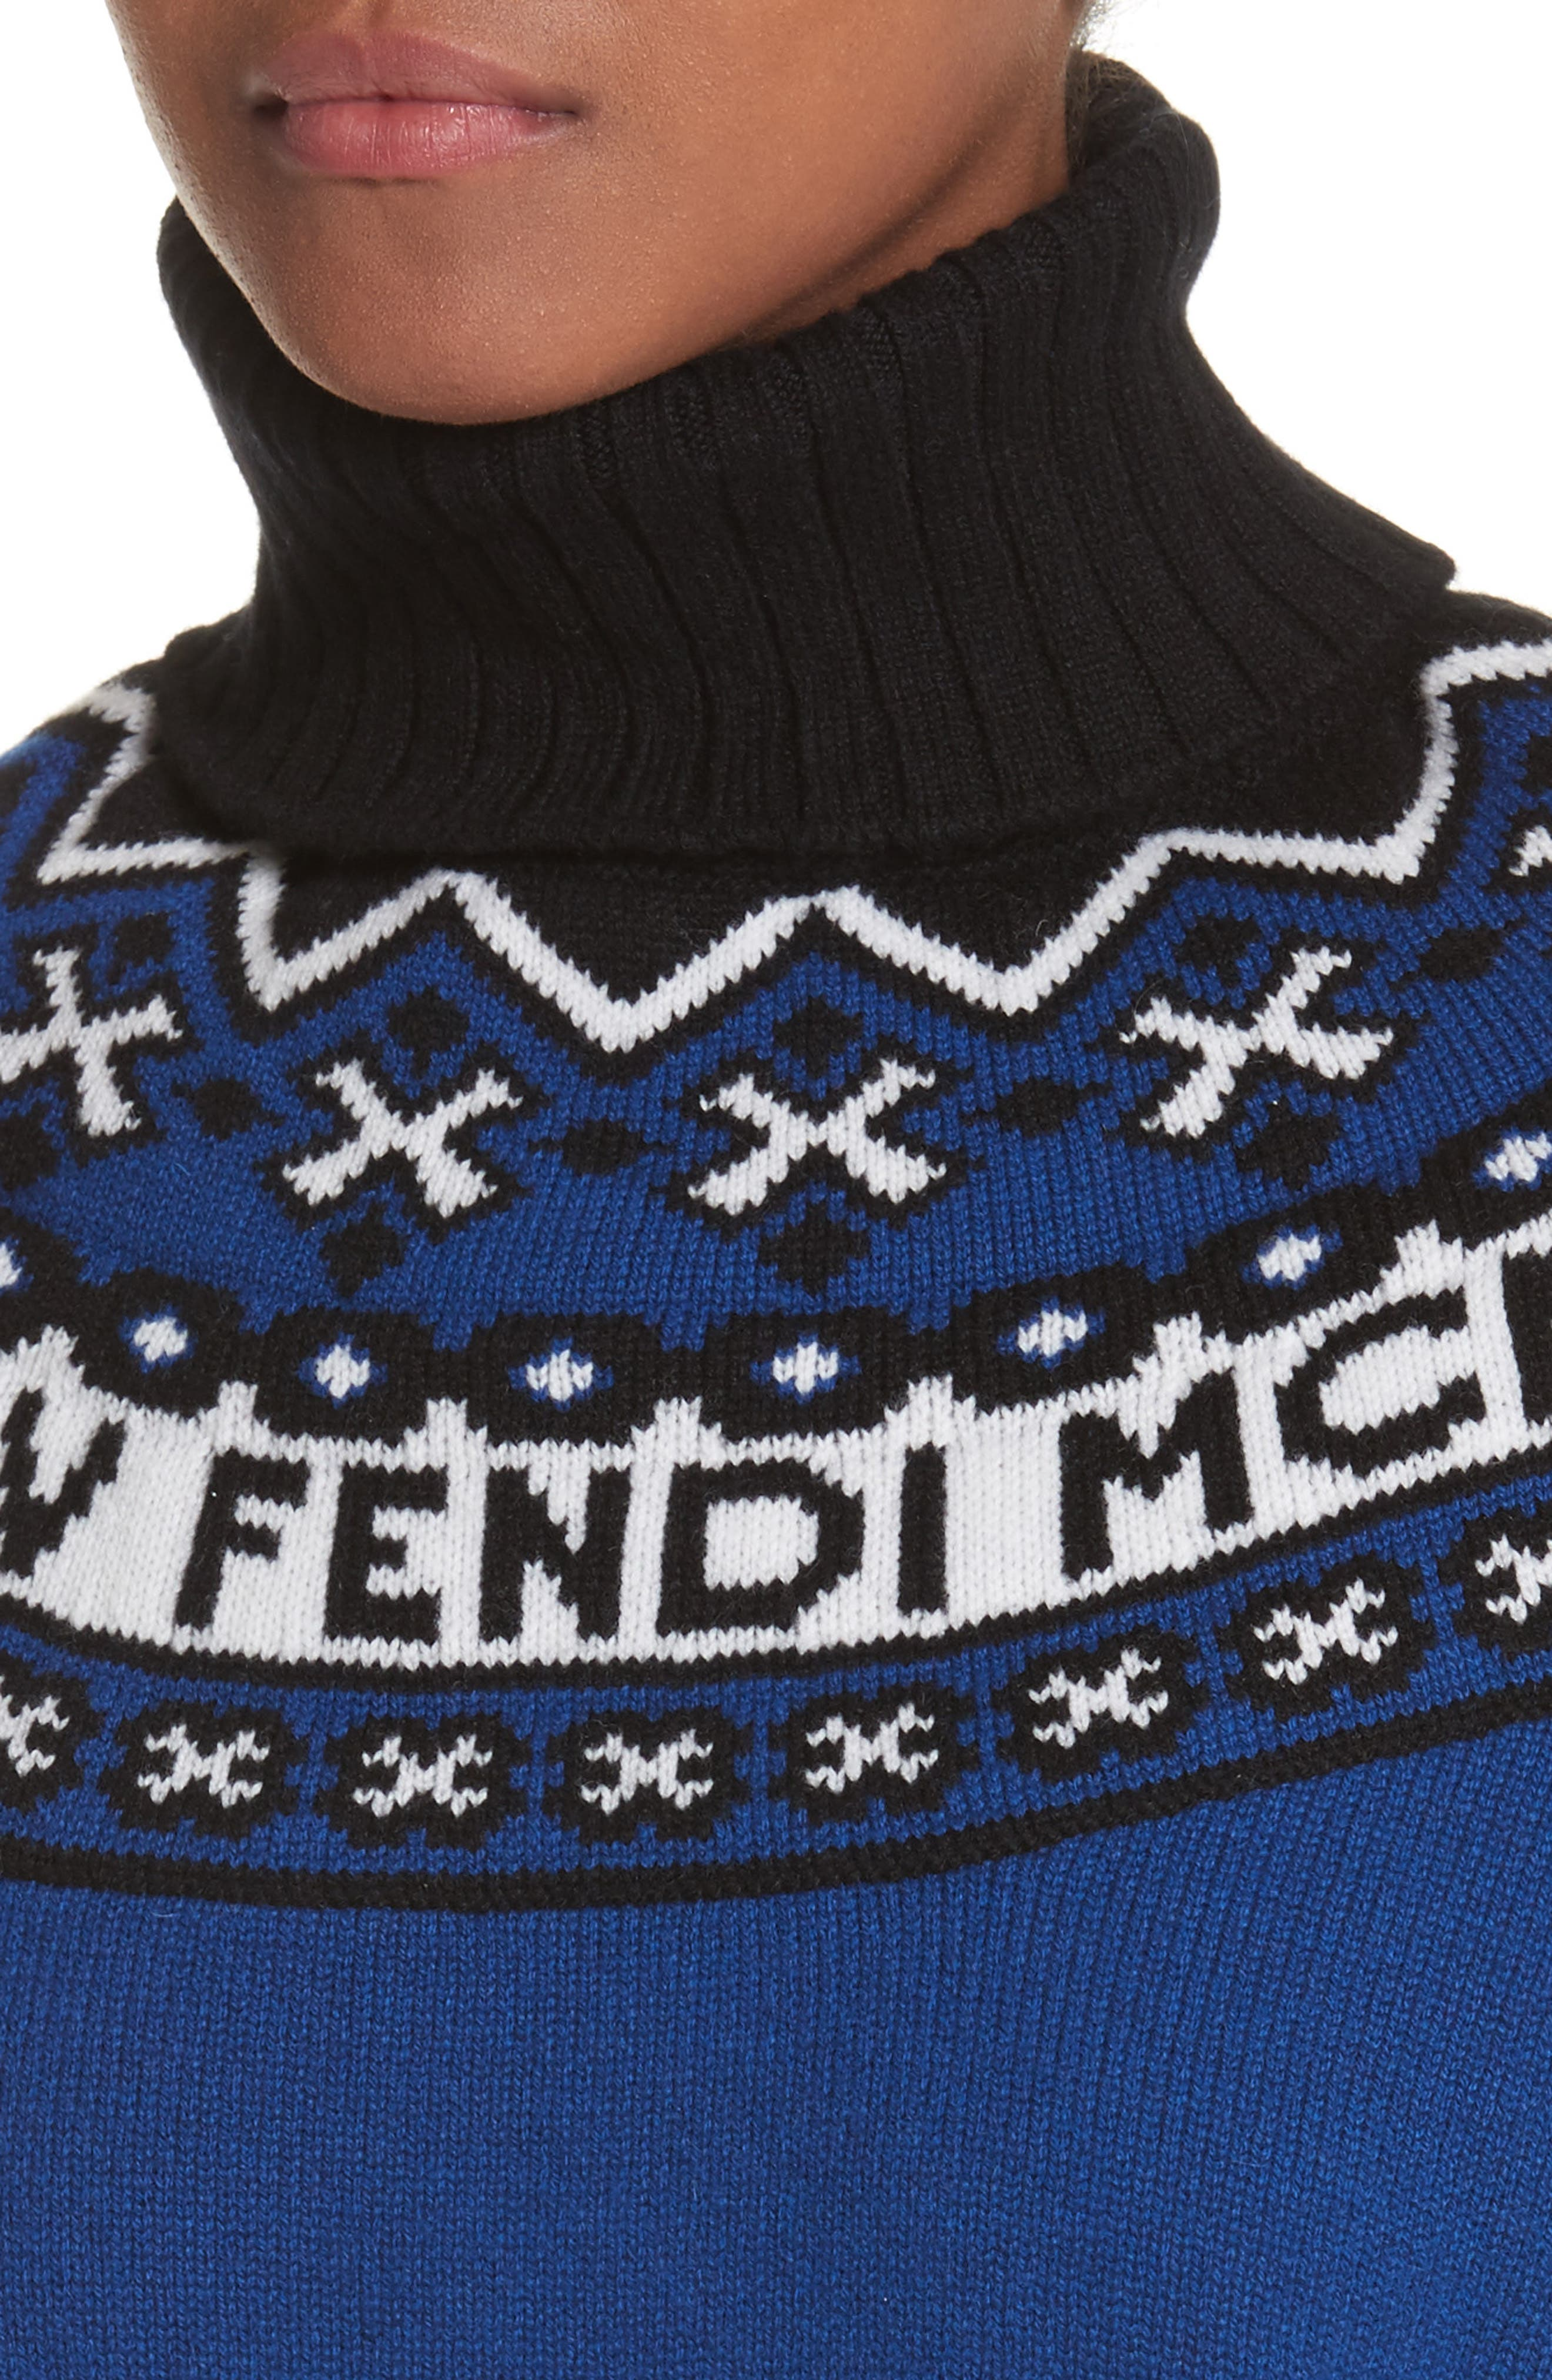 Heritage Wool & Cashmere Sweater,                             Alternate thumbnail 4, color,                             400